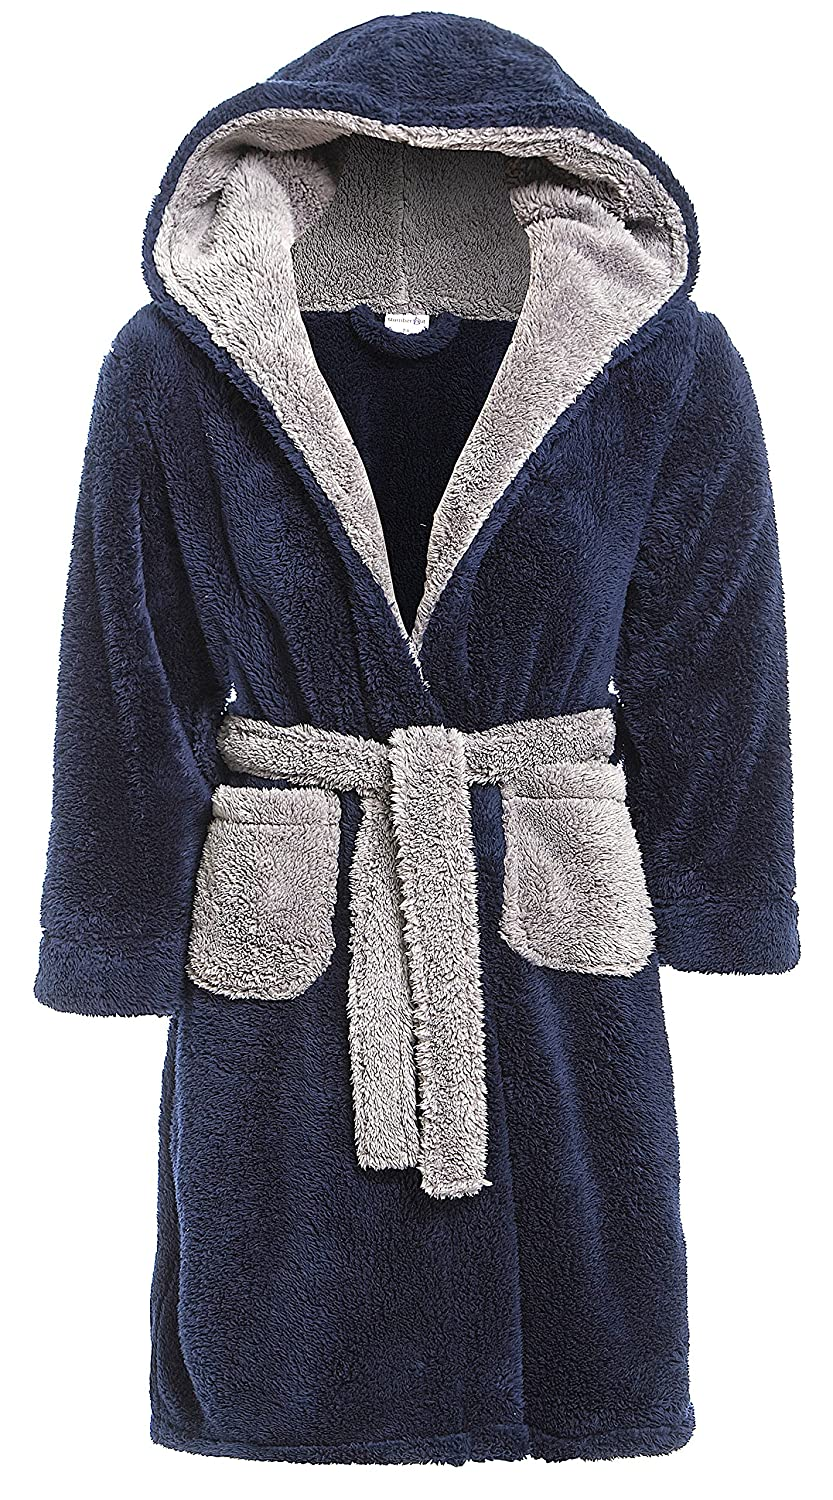 Boys Snuggle Fleece Hooded Dressing Gown Contrast Collar Grey Navy Blue Size UK 7 8 9 10 11 12 13 Years